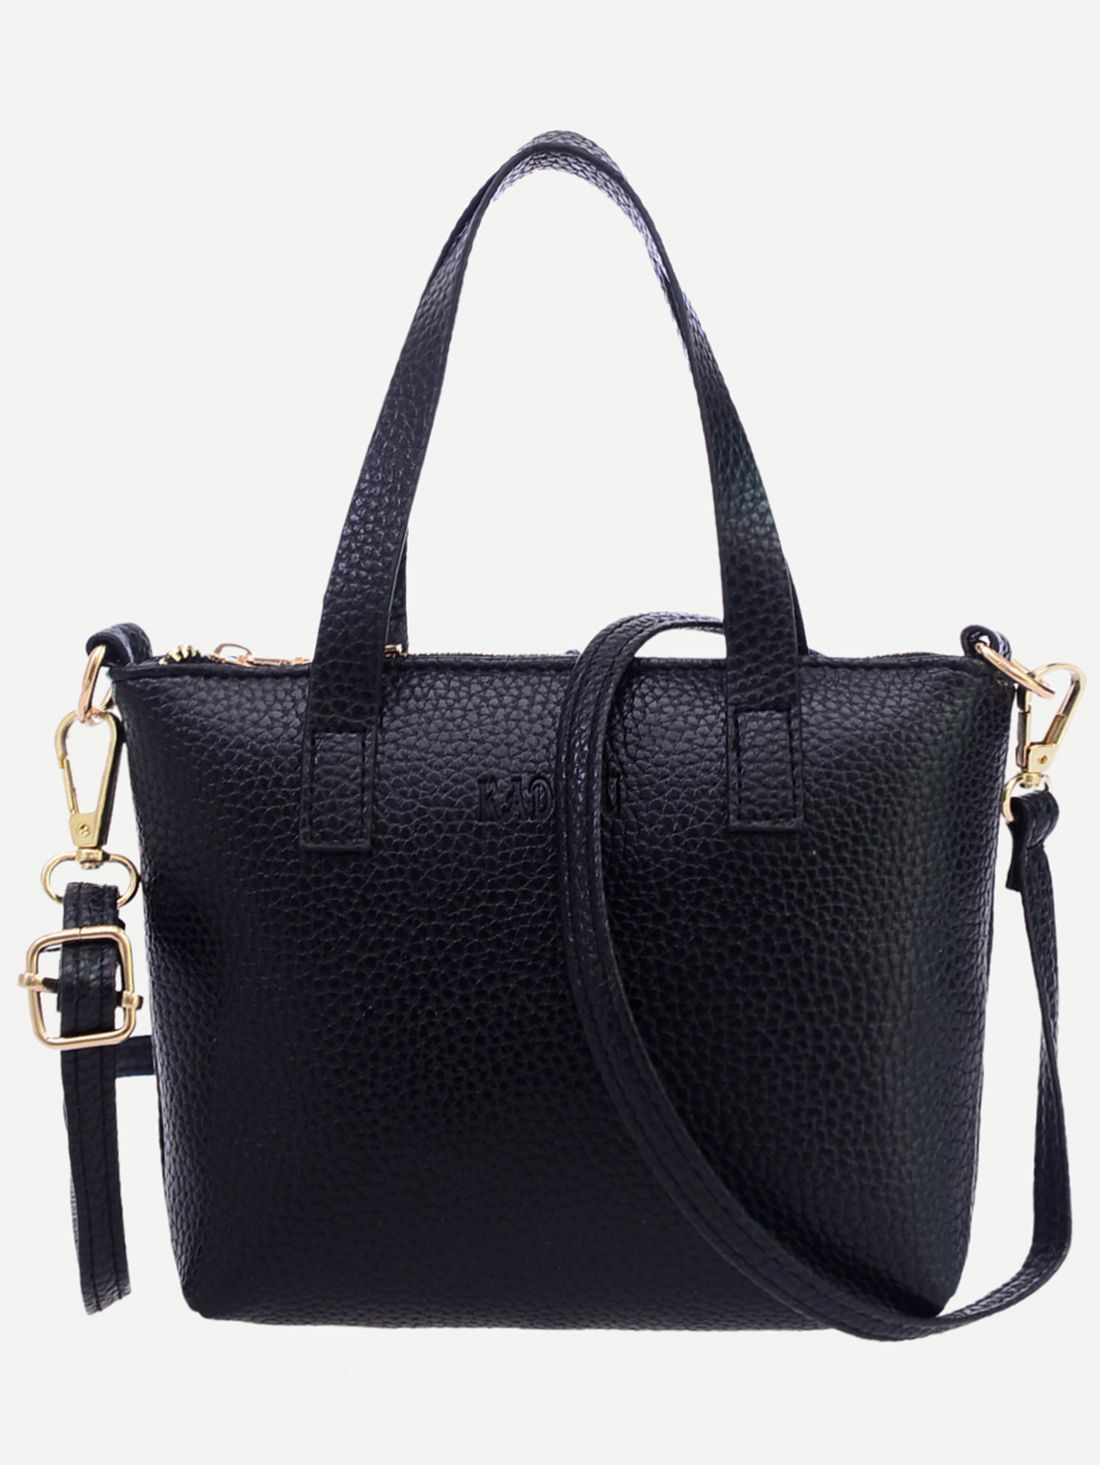 ba205ba17650 Shop Black Pebbled Faux Leather Tote Bag With Strap online. SheIn ...